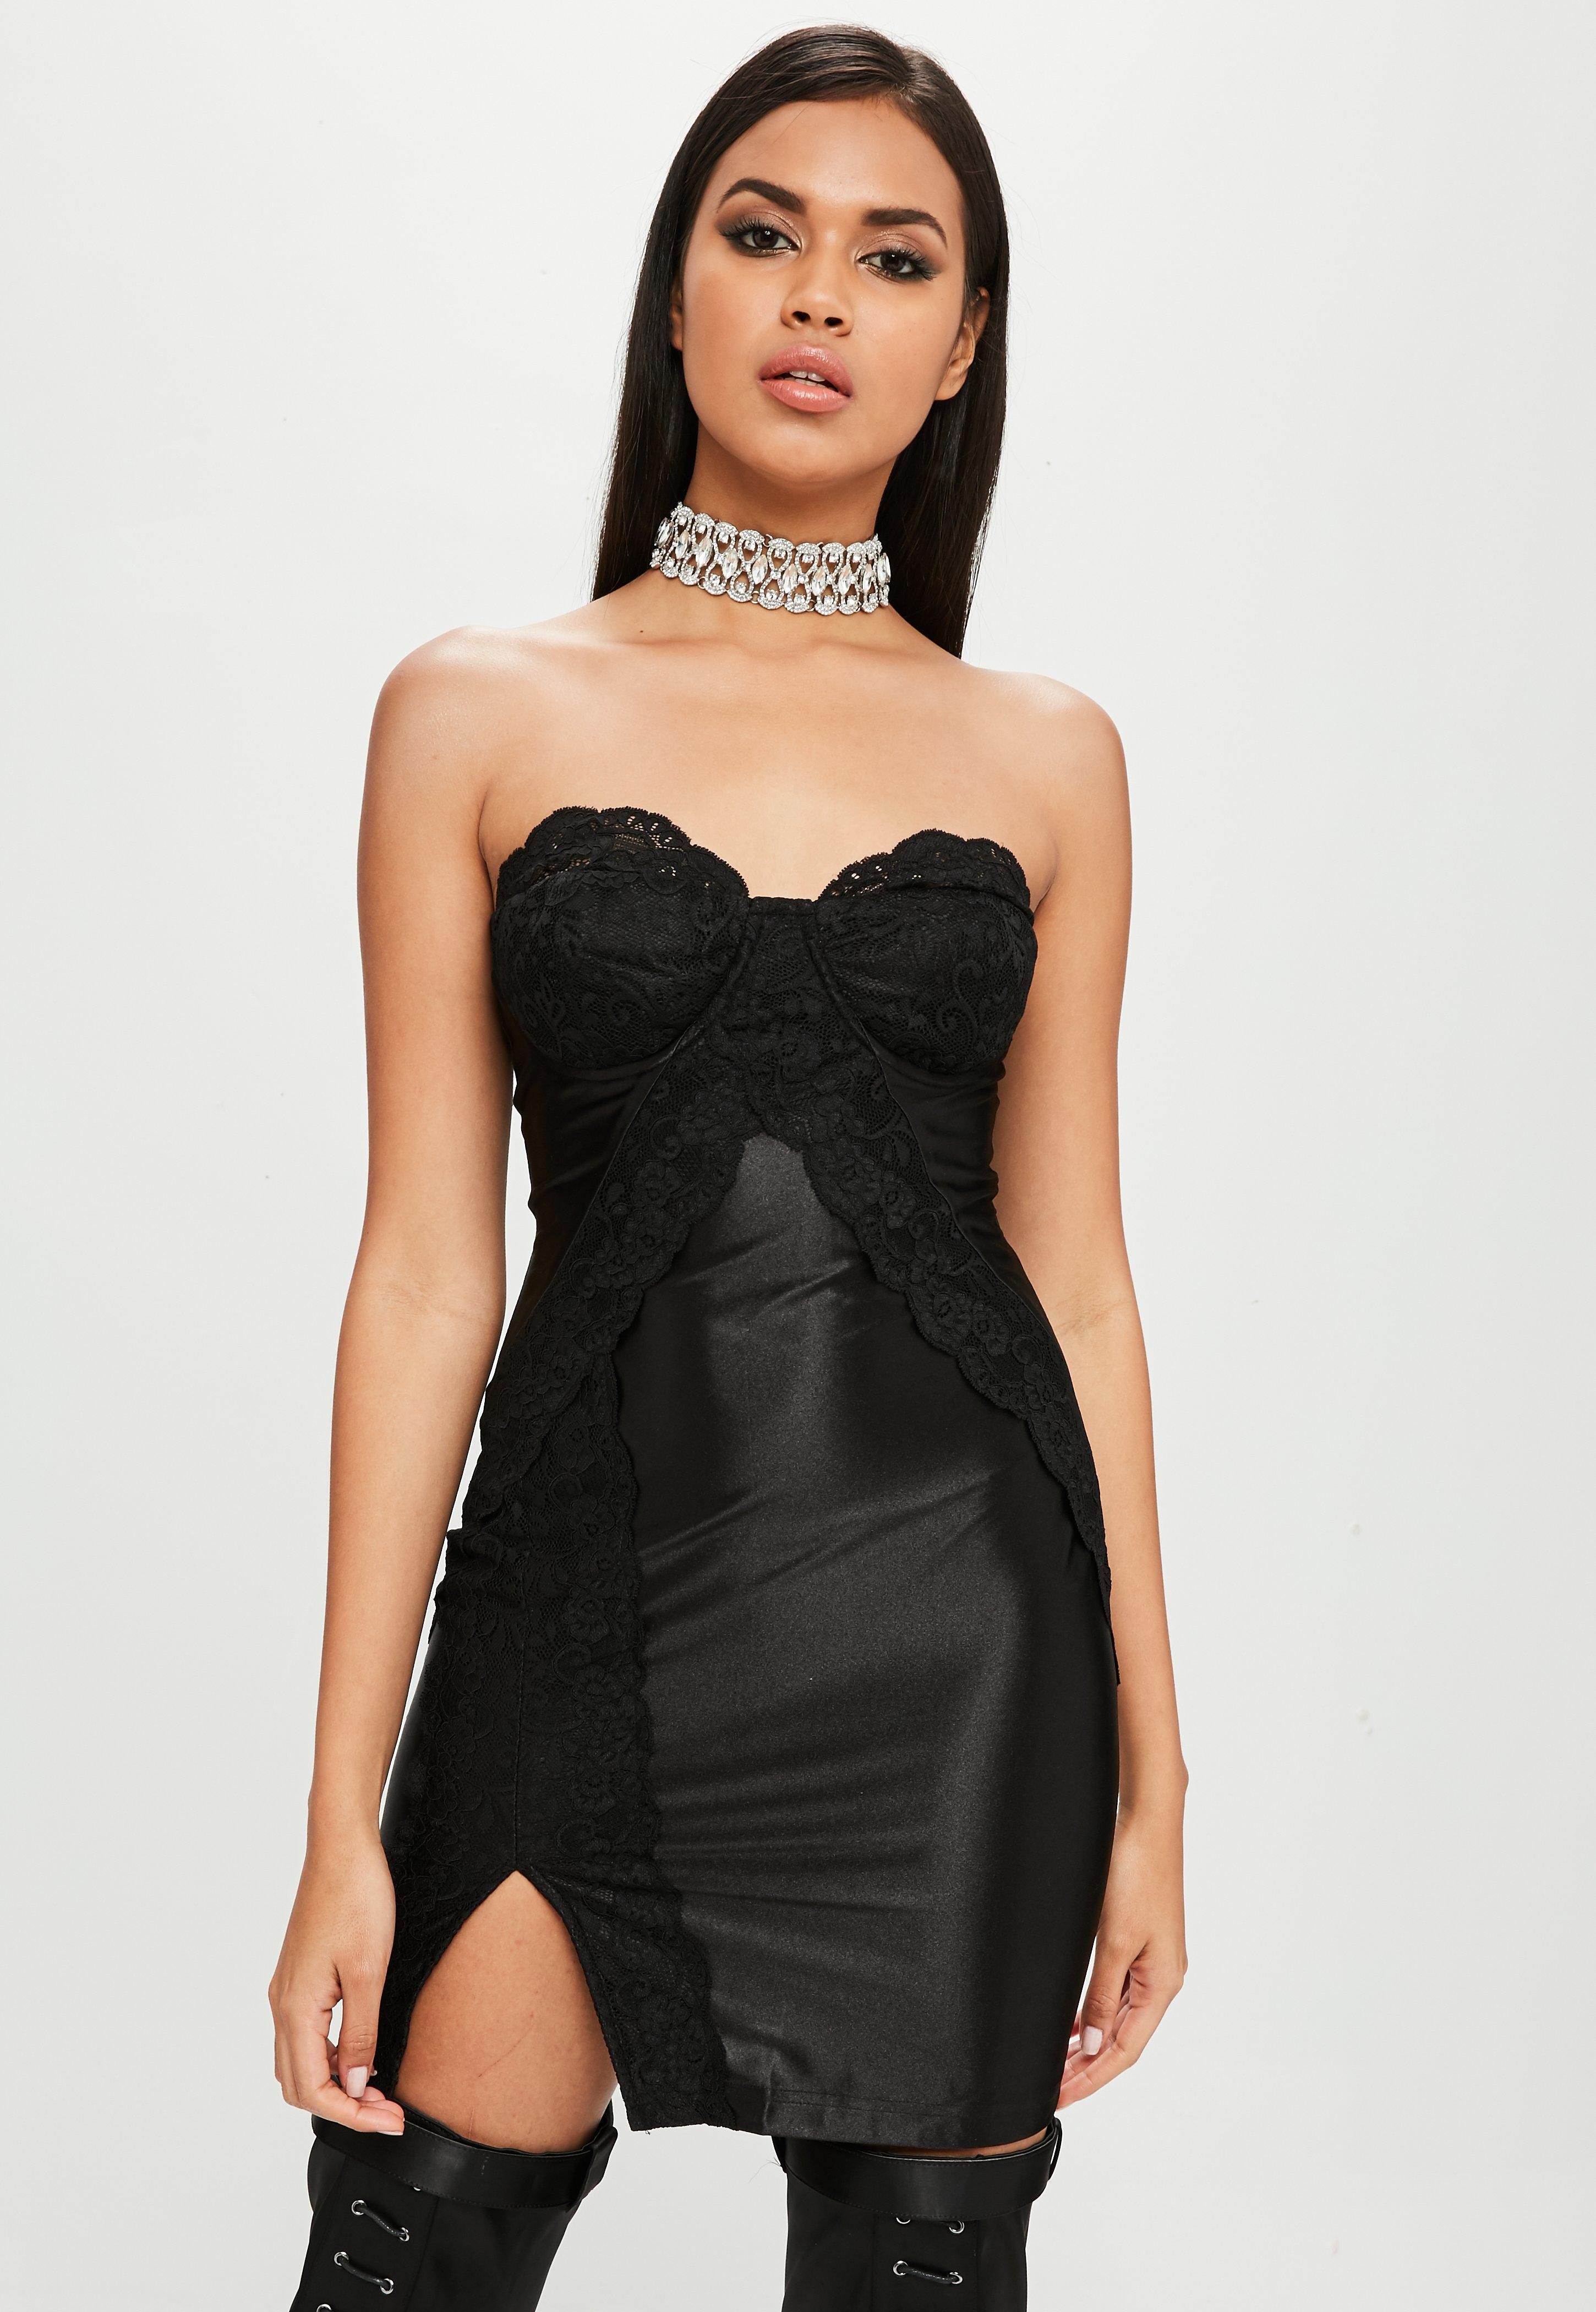 Strapless Short Black Frilly Dress